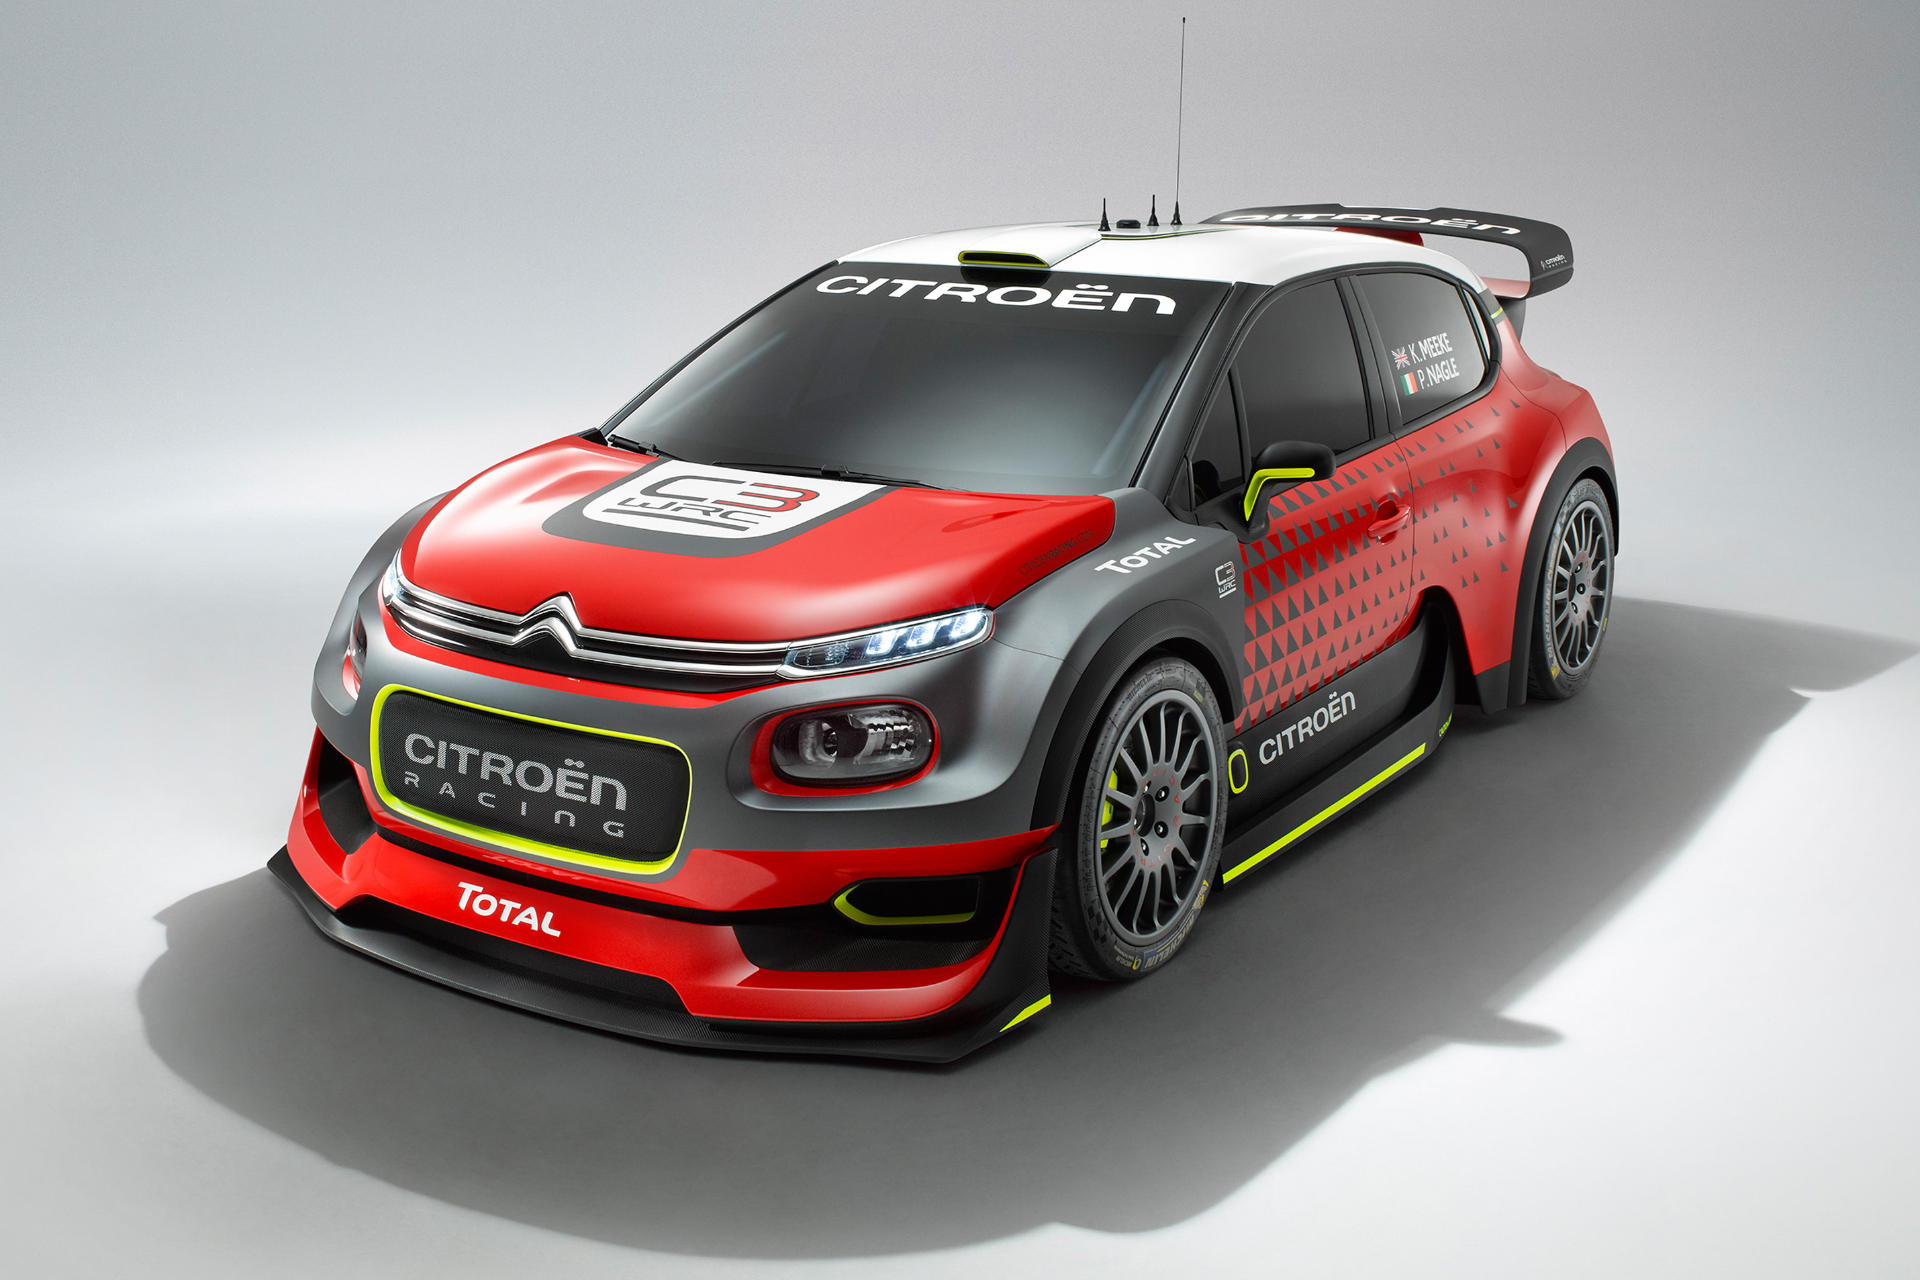 More Noise = More Fun? Citroën's WRC Return